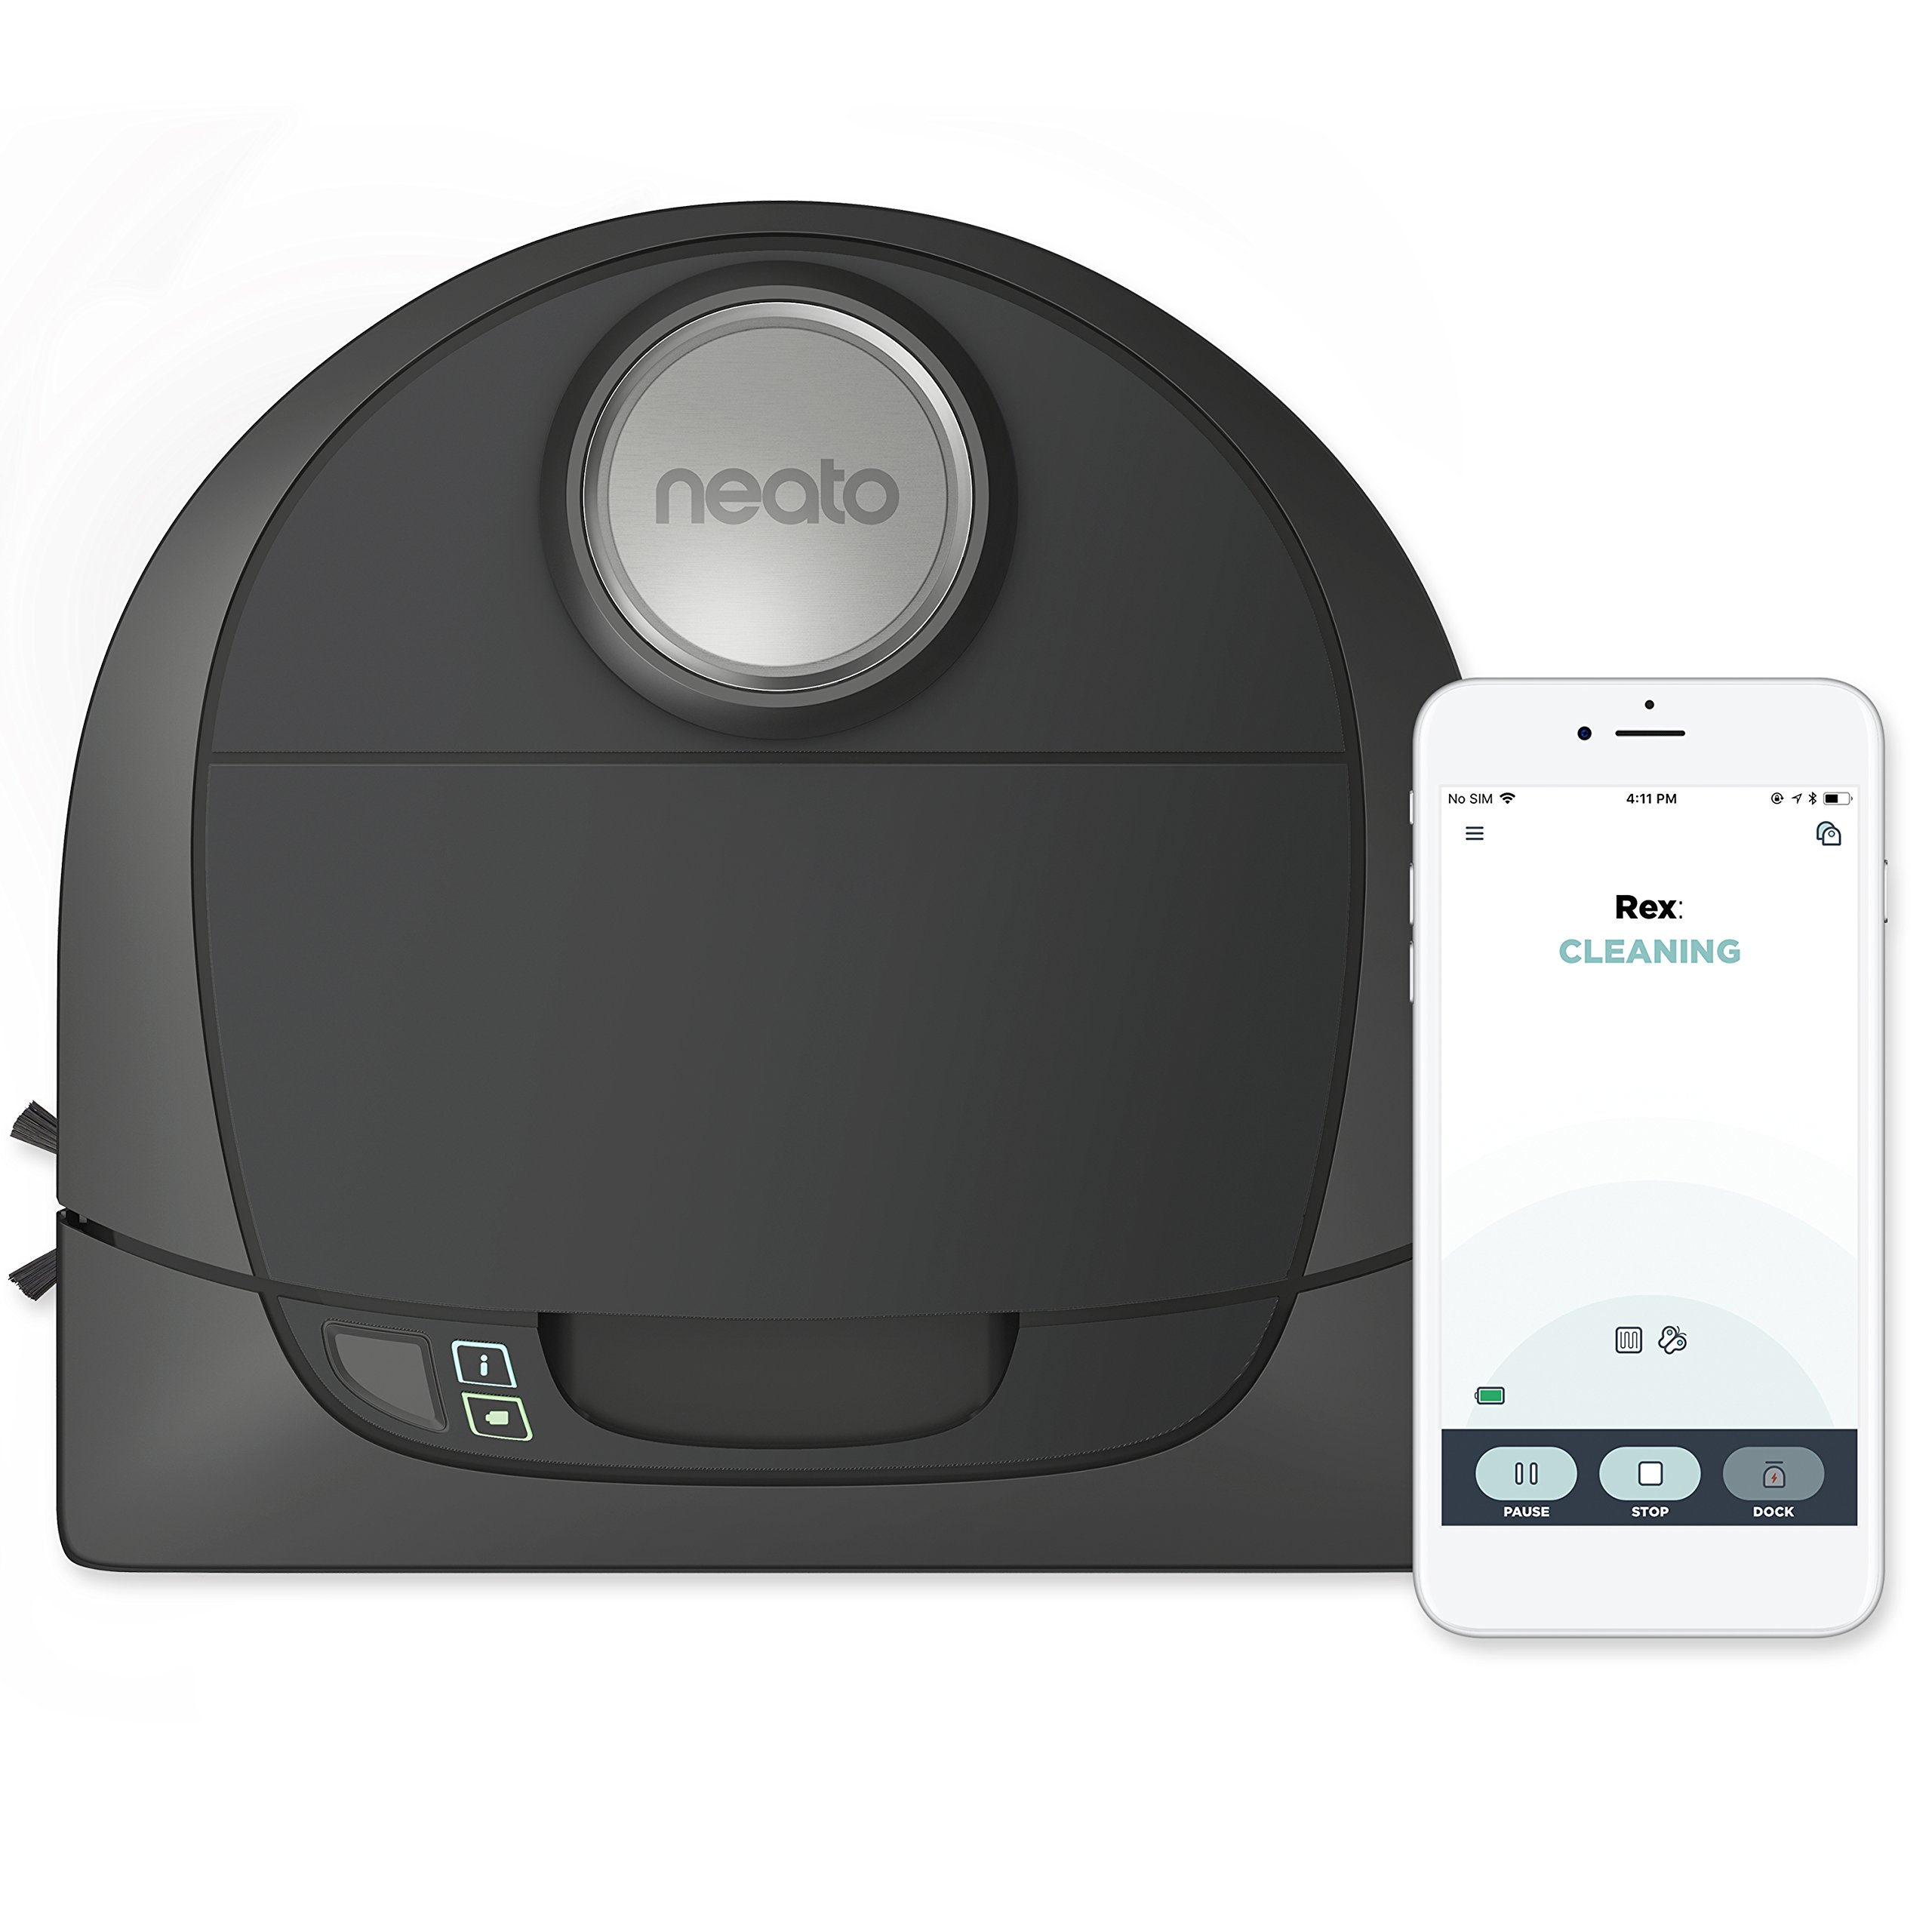 Neato Botvac D5 Connected Navigating Robot Vacuum, Pet & Allergy, Works with Amazon Alexa by Neato Robotics